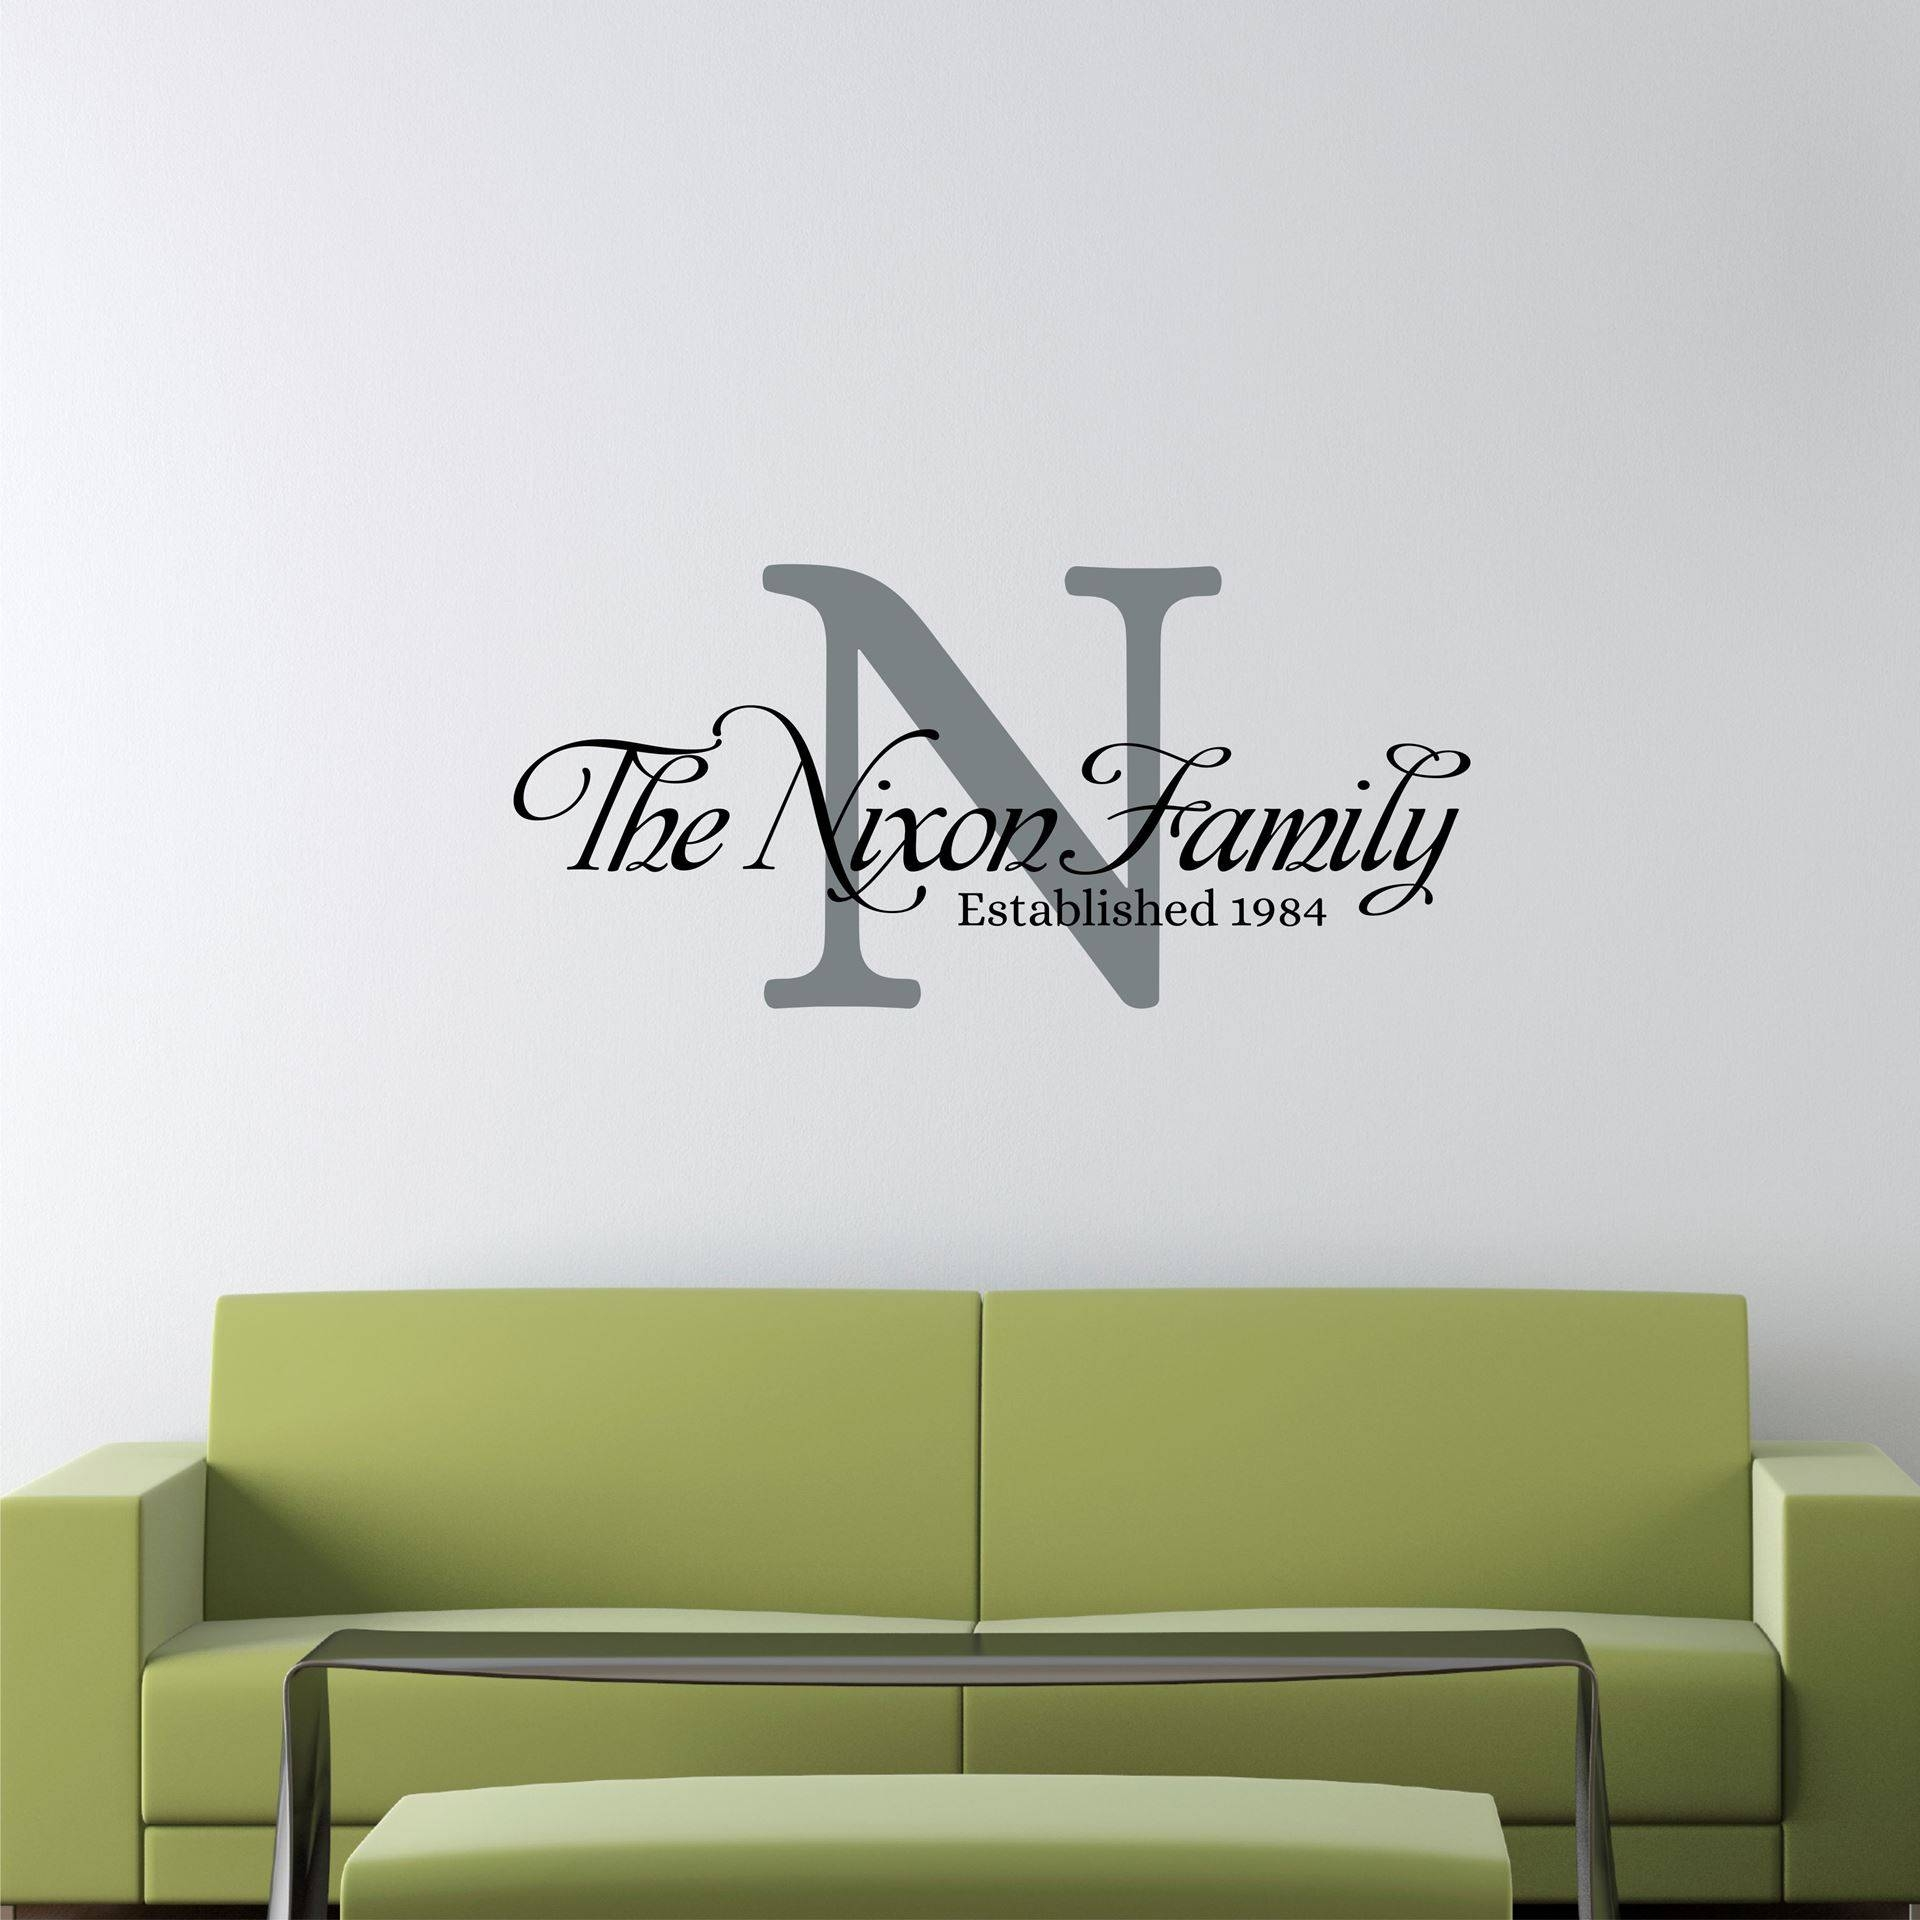 Amusing 25+ Personalized Last Name Wall Art Design Decoration Of Within Most Recently Released Personalized Last Name Wall Art (View 1 of 20)